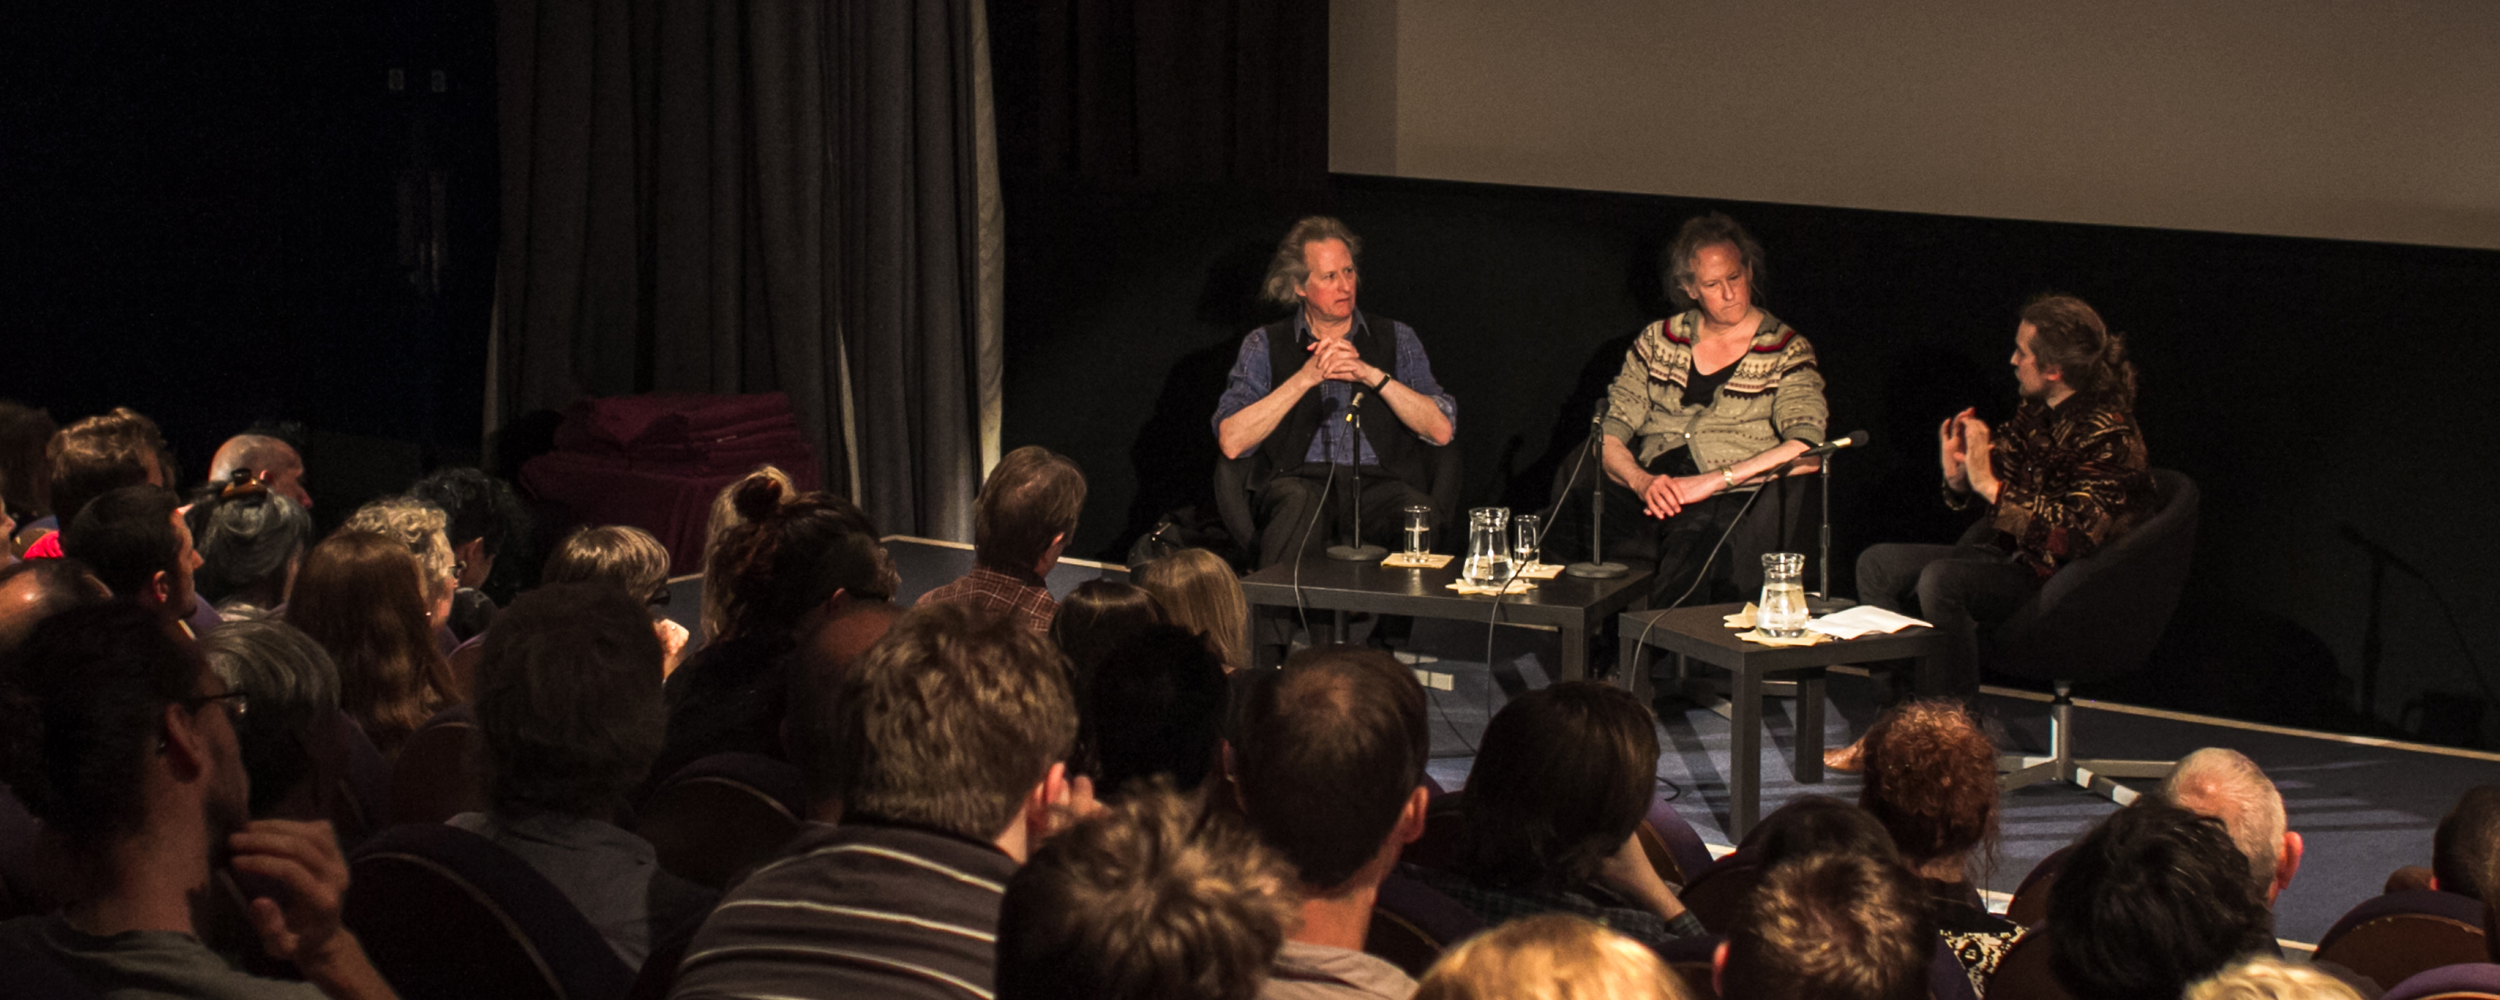 In conversation with the Quay Brothers